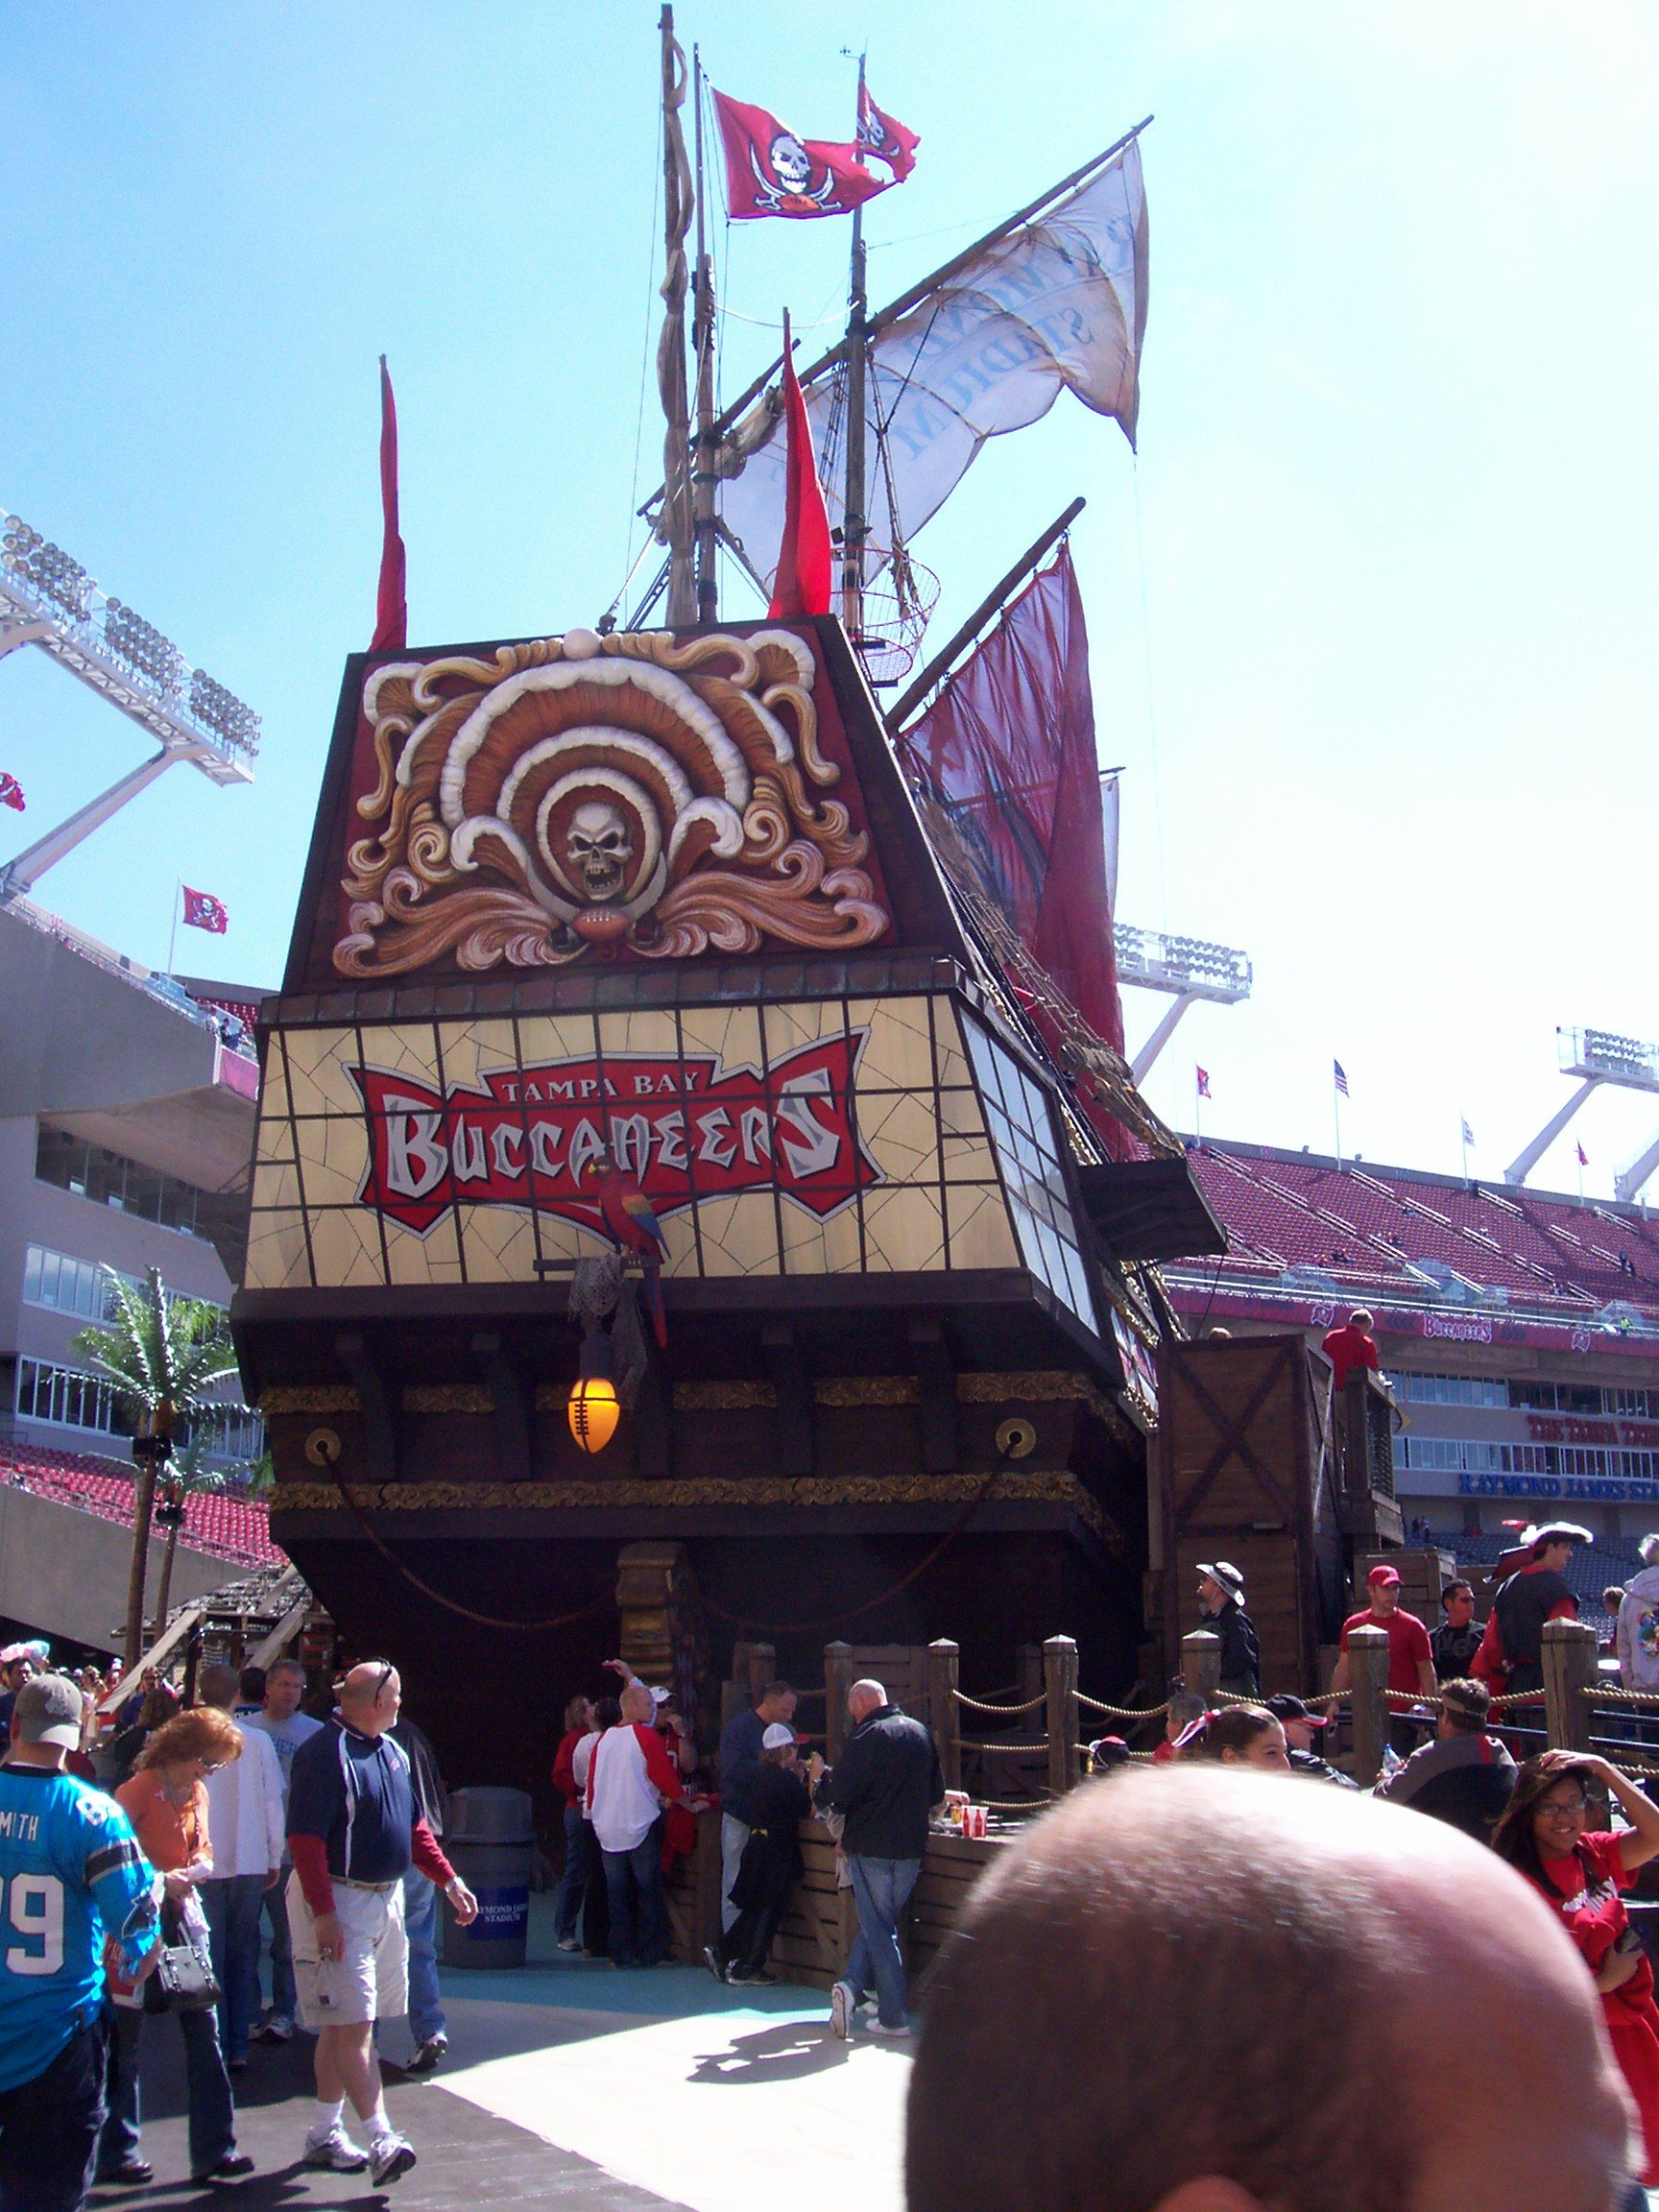 tampa bay buccaneers stadium pirate ship - Google Search 6469027a546